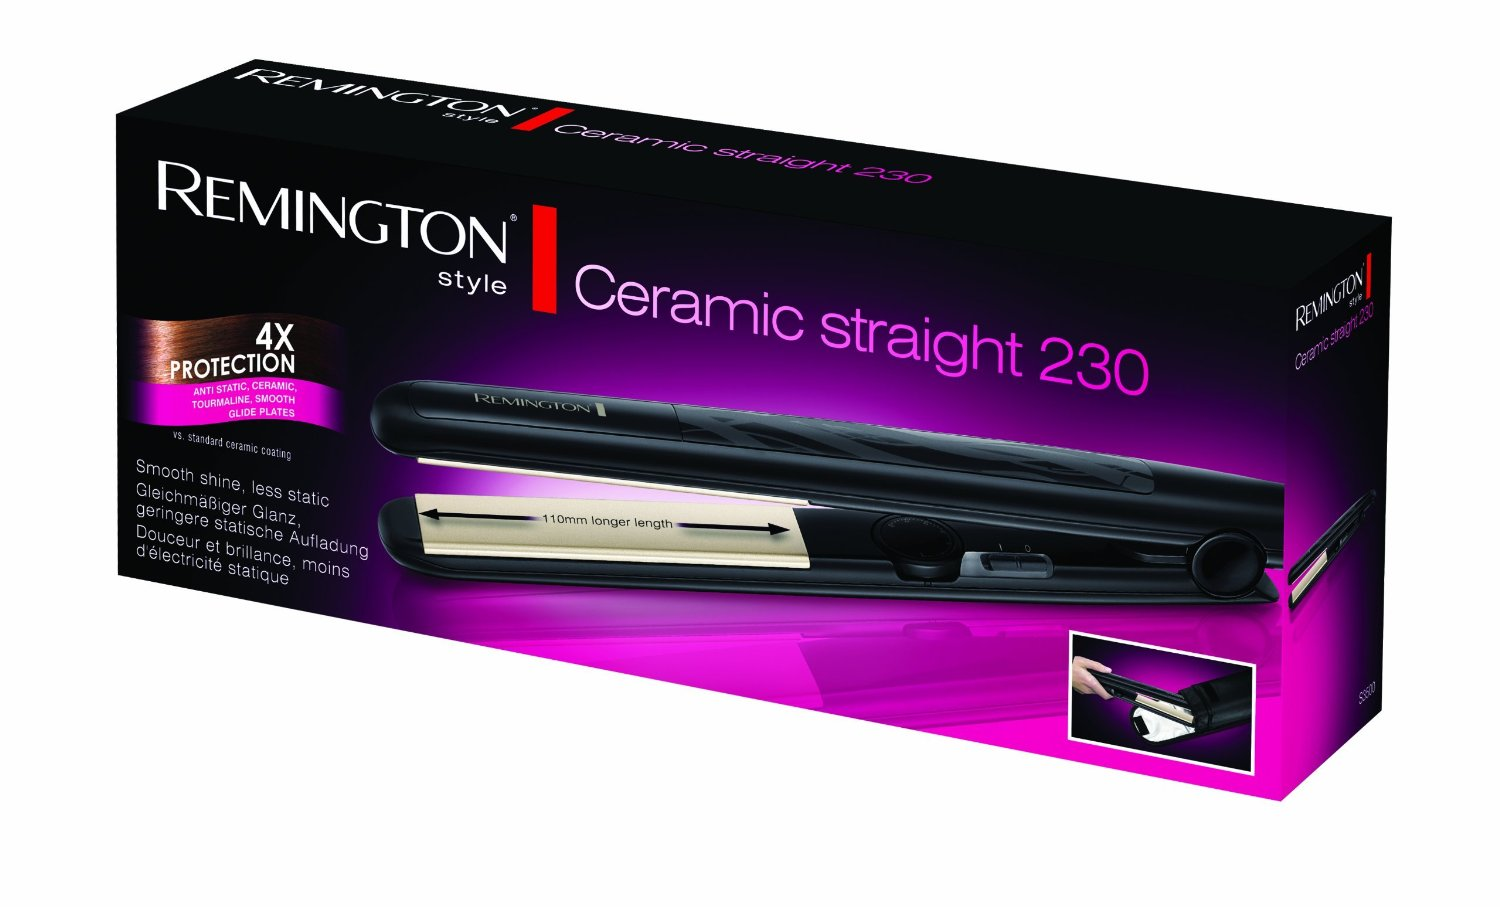 Remington S3500 Ceramic Straight 230 Hair Straightener Review